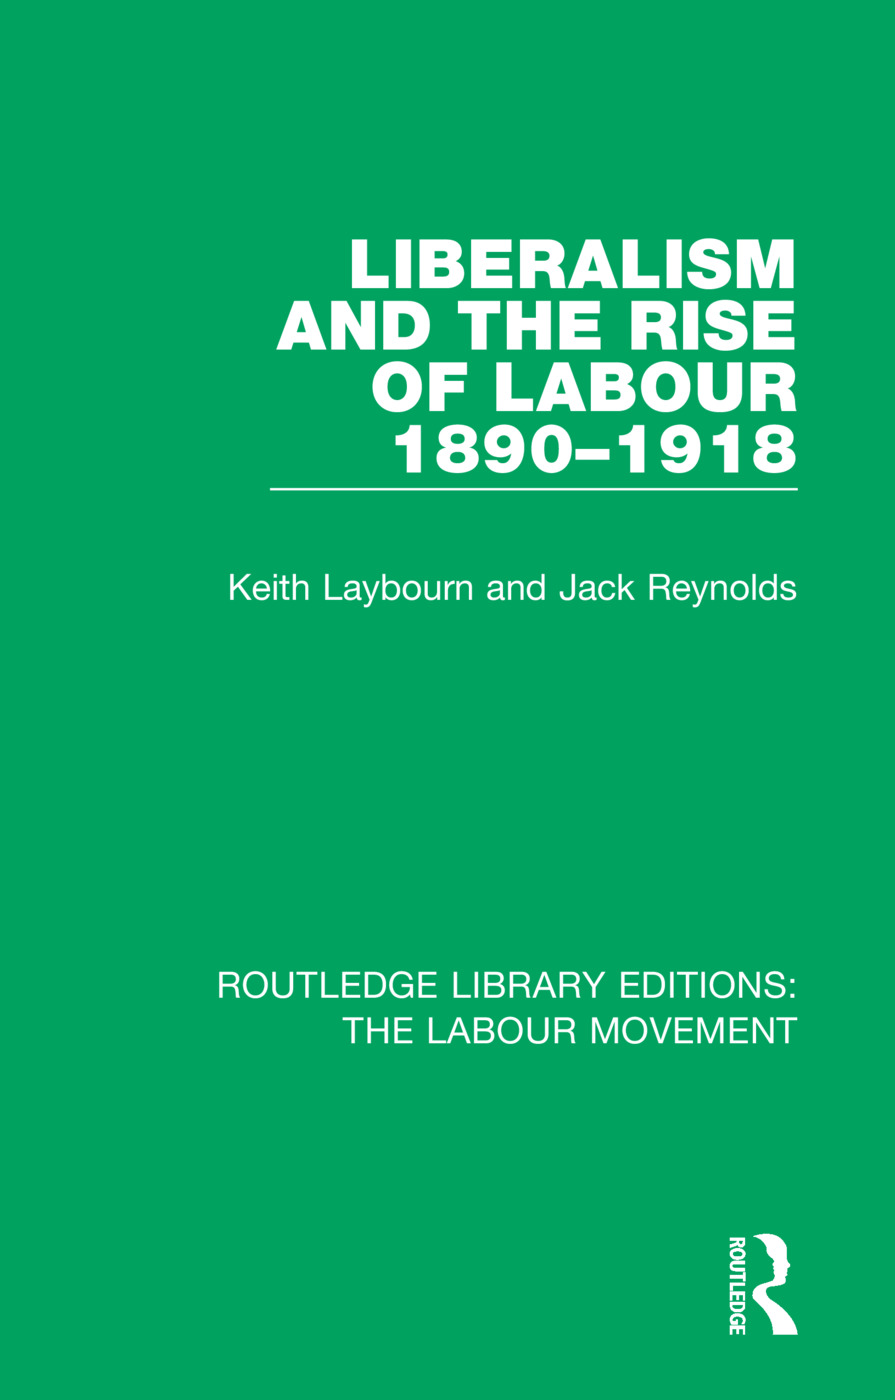 Liberalism and the Rise of Labour 1890-1918 book cover